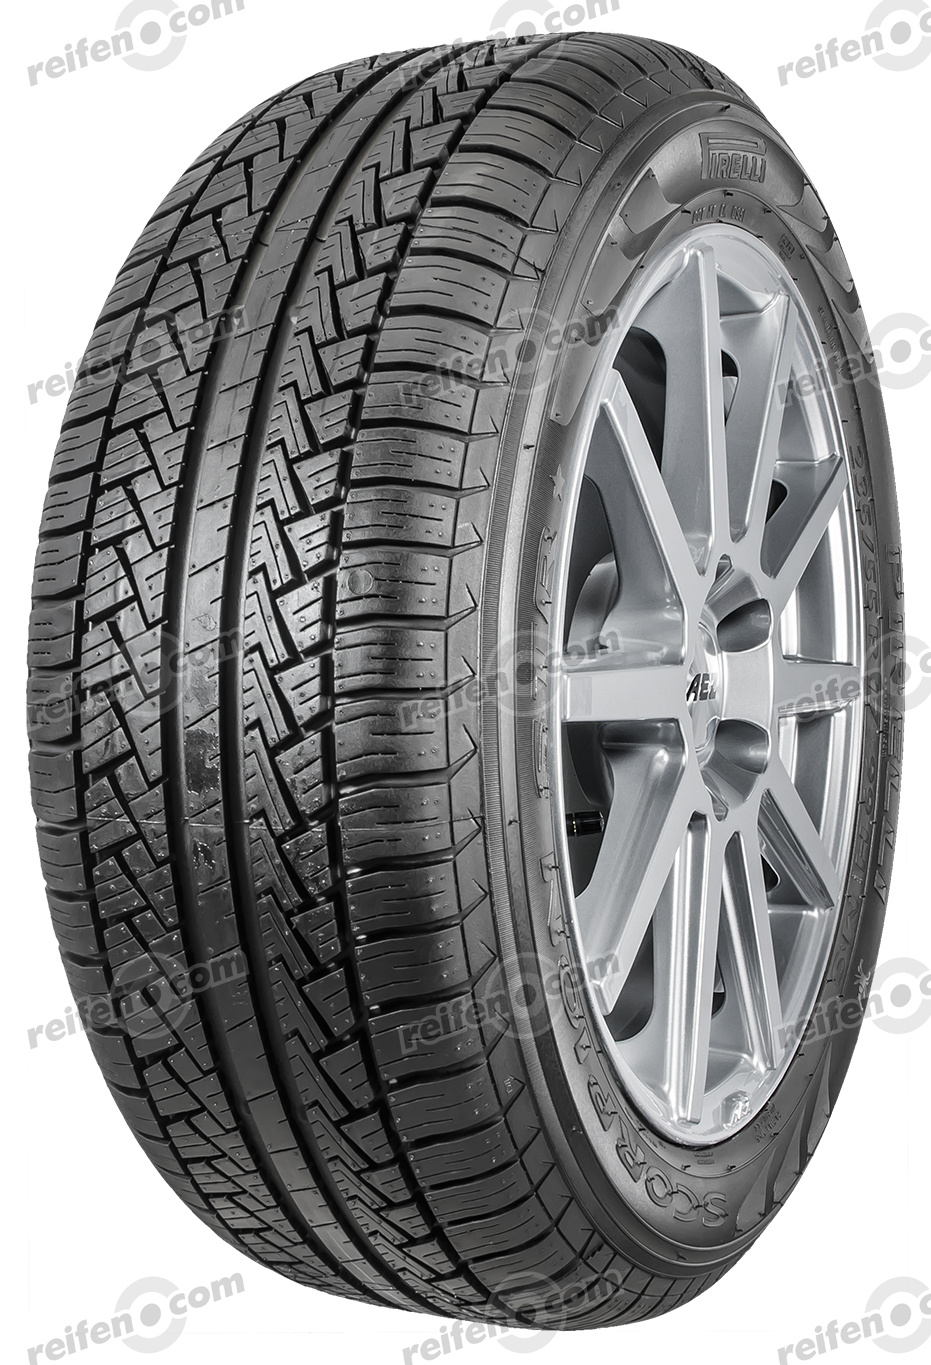 P205/70 R15 96H Scorpion STR RB M+S  Scorpion STR RB M+S